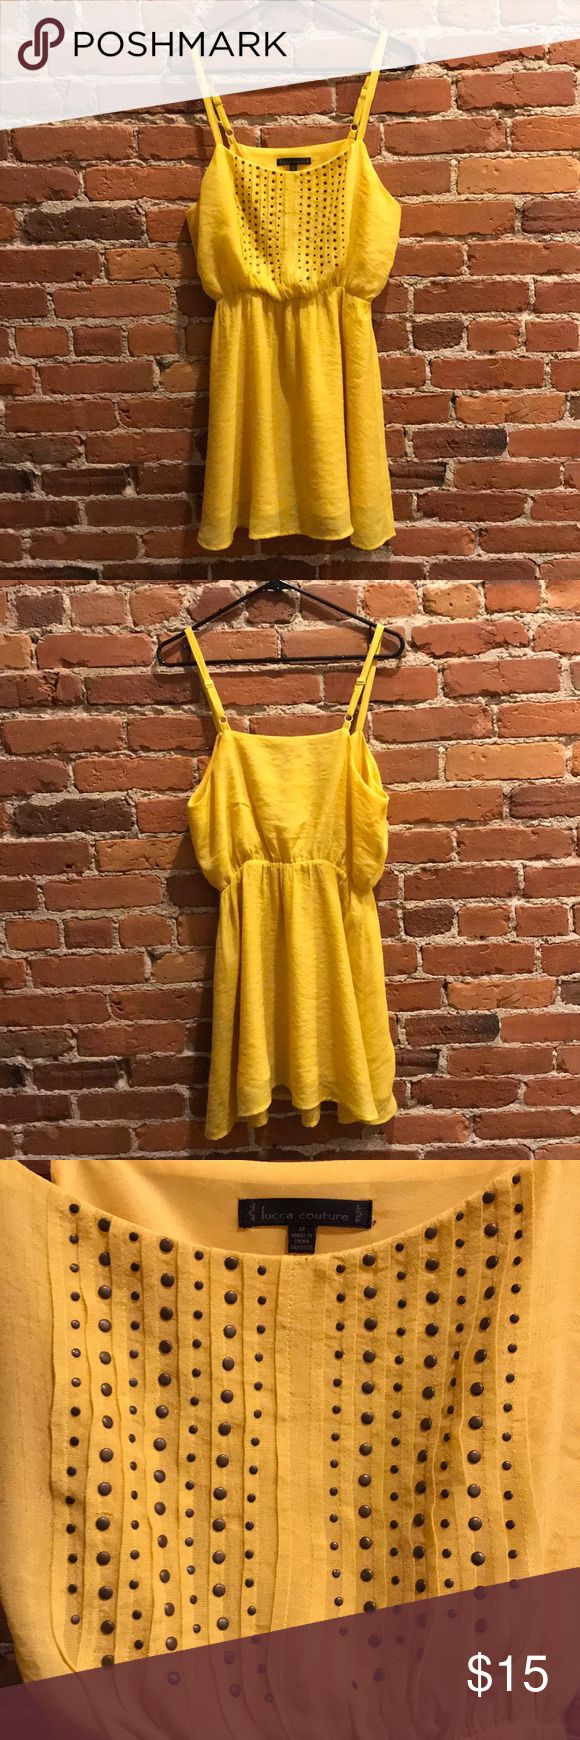 Fun yellow/golden dress for a night out! This yellow/golden dress has adjustable straps and an elastic waistband. It features bronze-colored beading on the front, and has a flowy, breezy bottom. The yellow has a nice subtle shine. Perfect summer dress for a fun night out!   Originally purchased from Urban Outfitters. In good condition. Lucca Couture Dresses Mini